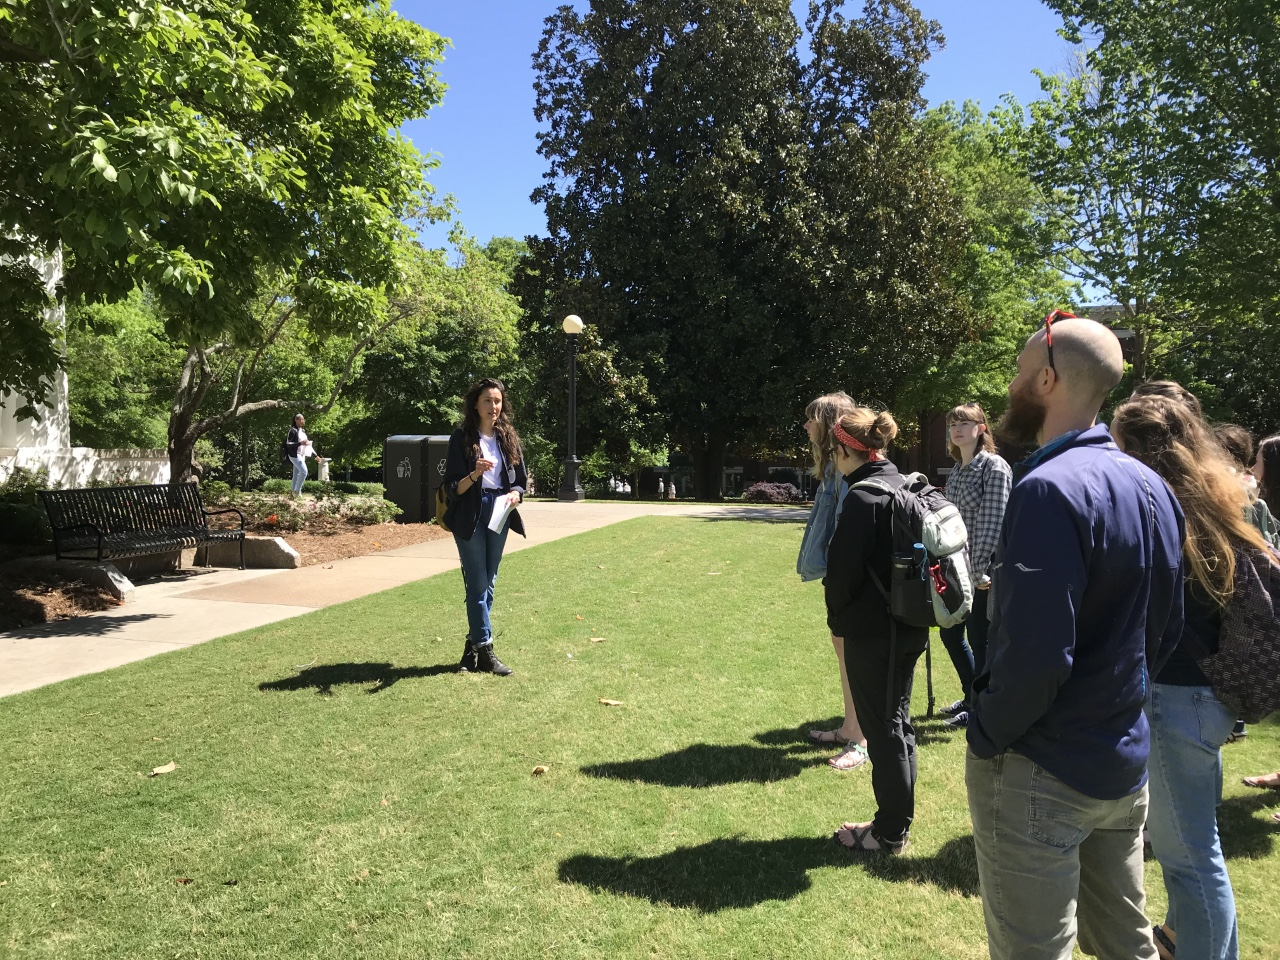 Kendall Busher, a CAES horticulture student at the UGA College of Agricultural and Environmental Sciences, leads a tour of the UGA Campus Arboretum, which is spread across campus. Busher created a web-based walking tour of the arboretum for the UGA Office of Sustainability.